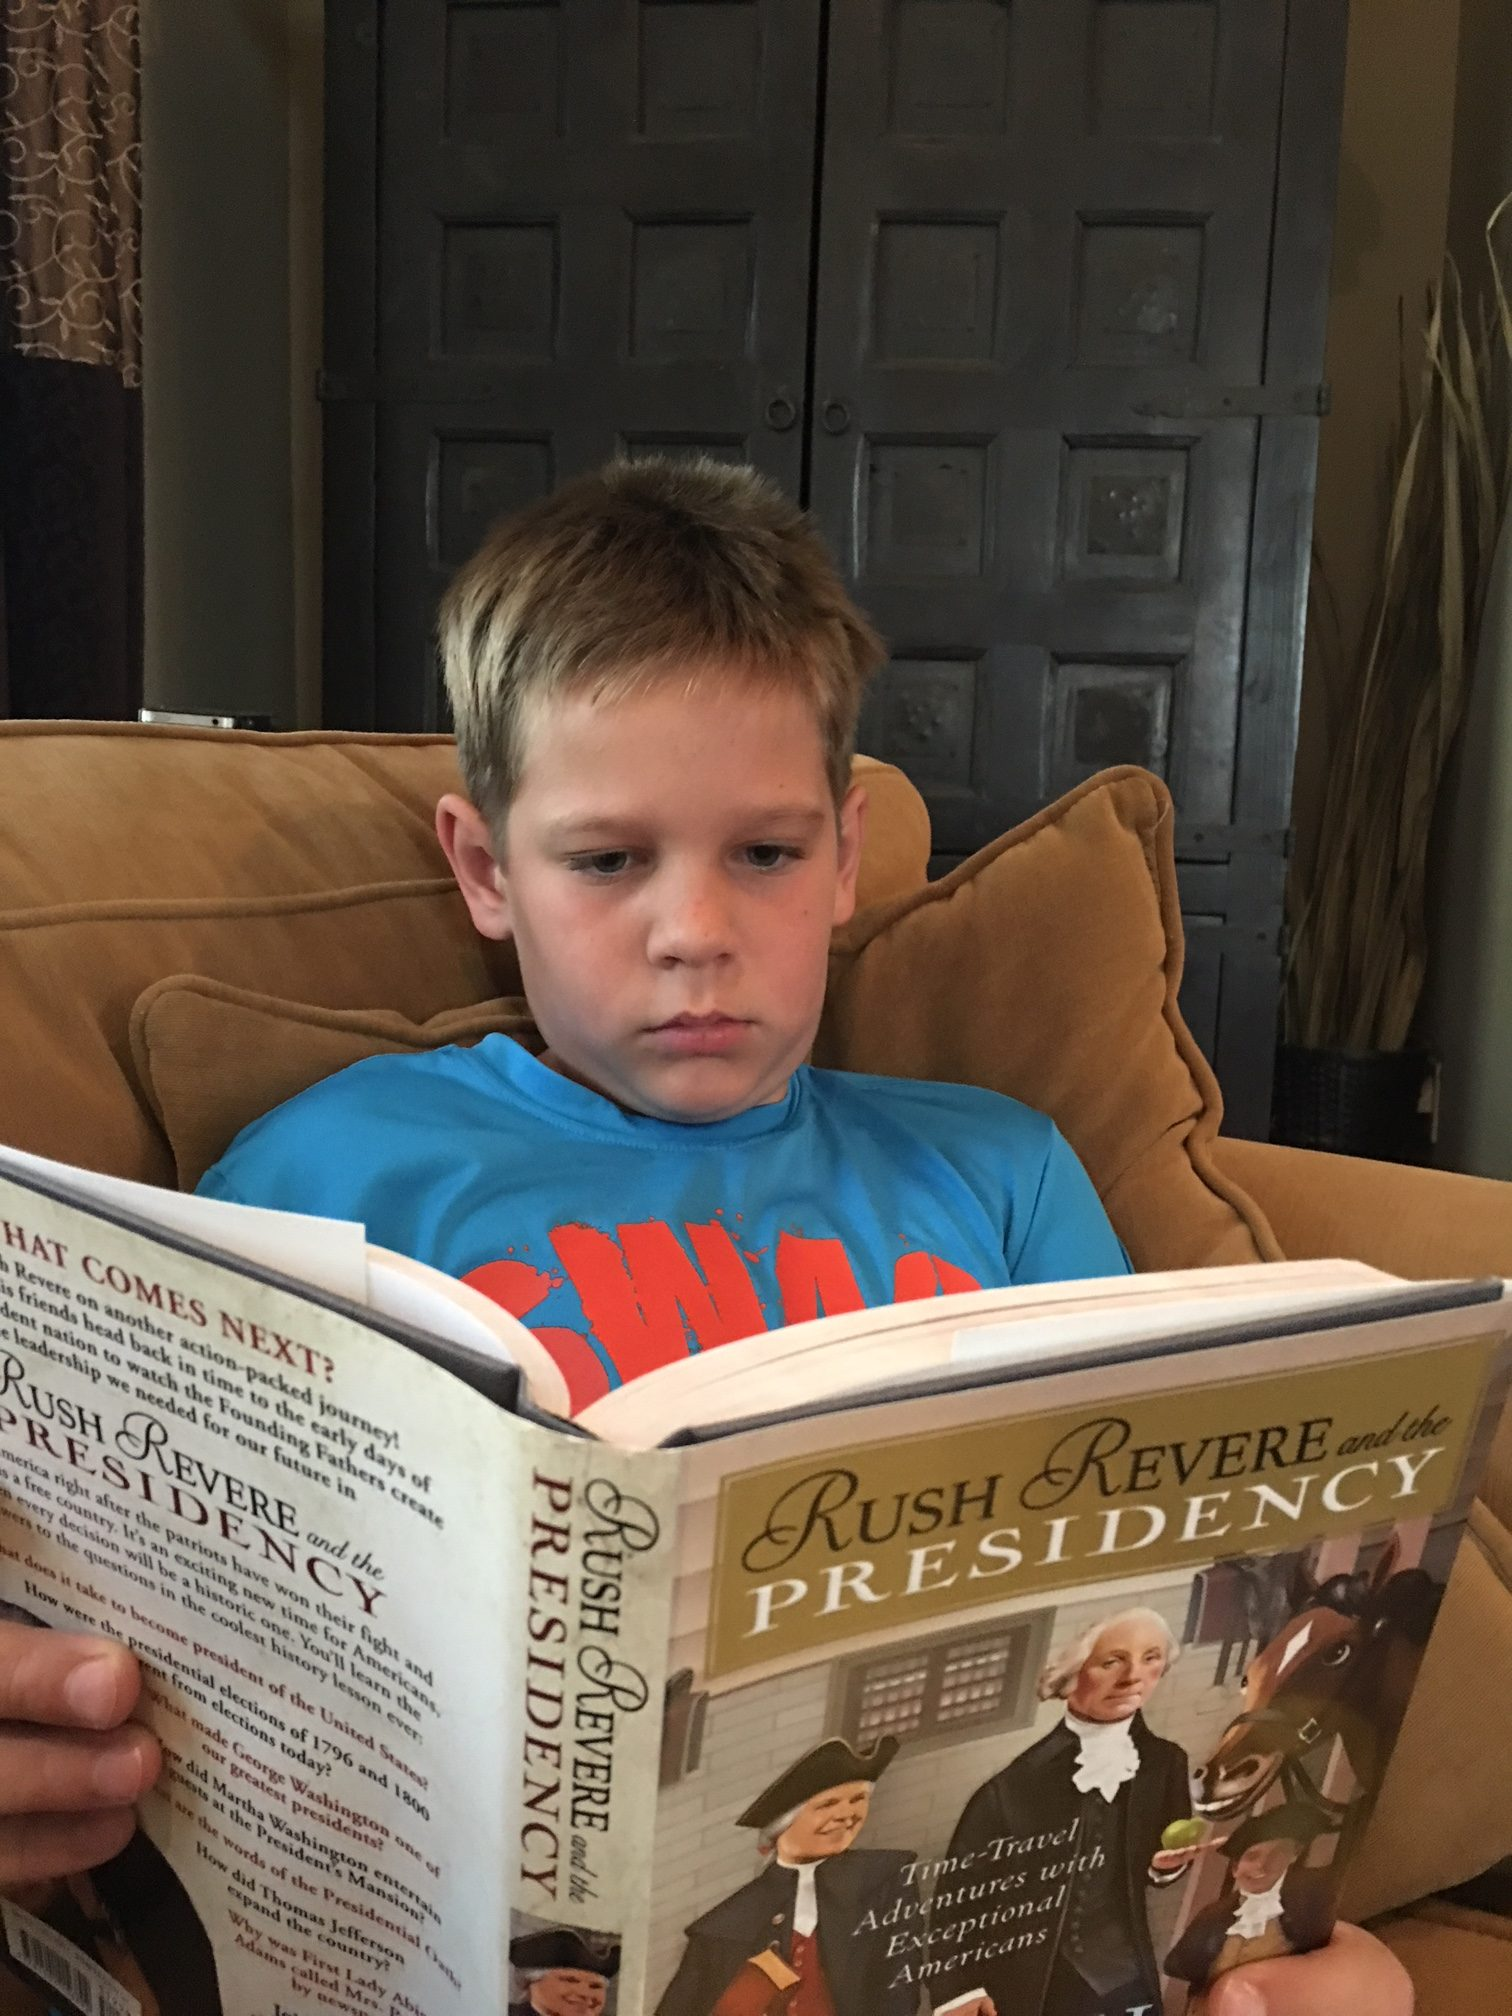 rush revere book review